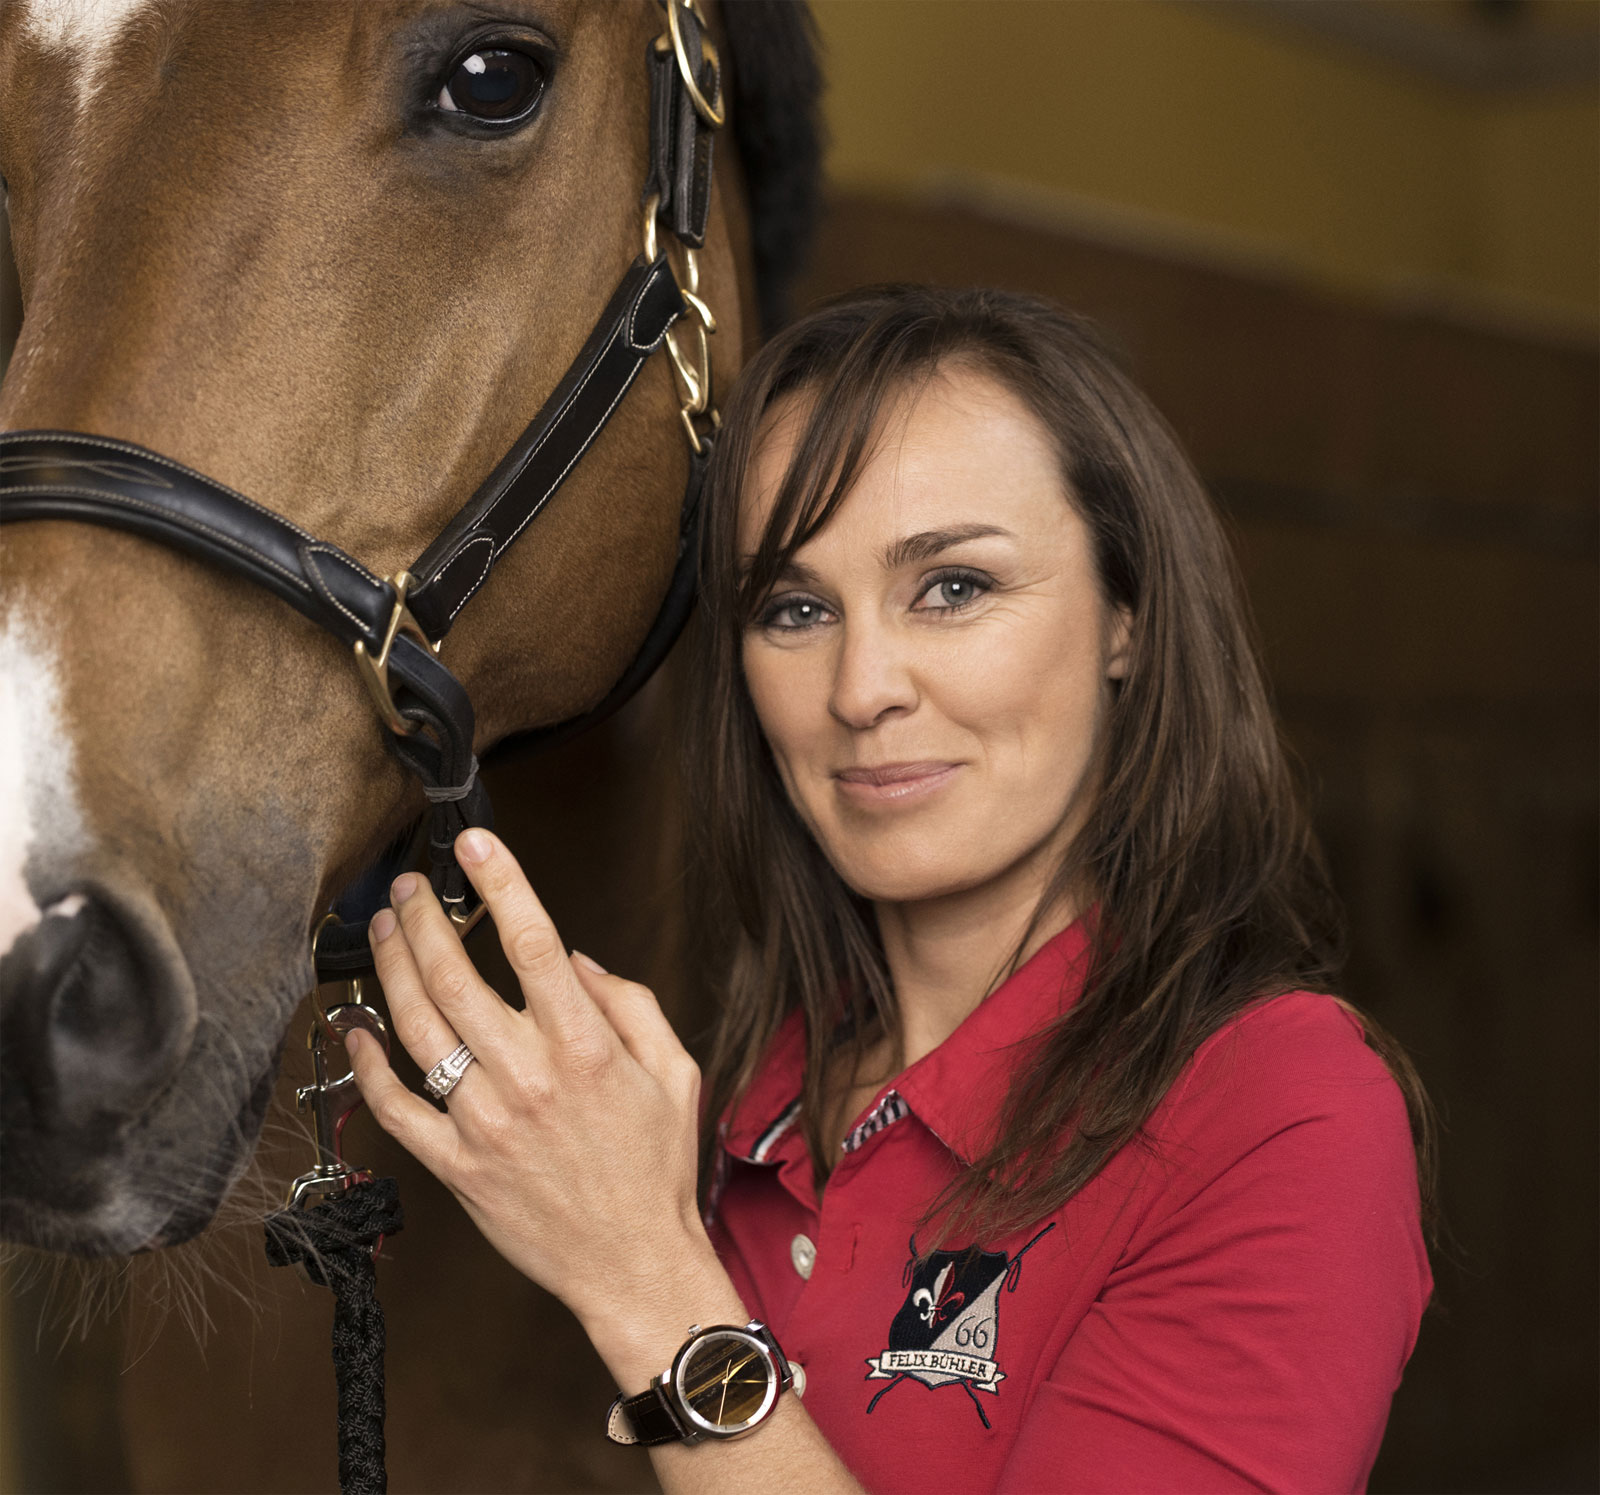 Tennis Great Martina Hingis Joins Forces With Alex Benlo